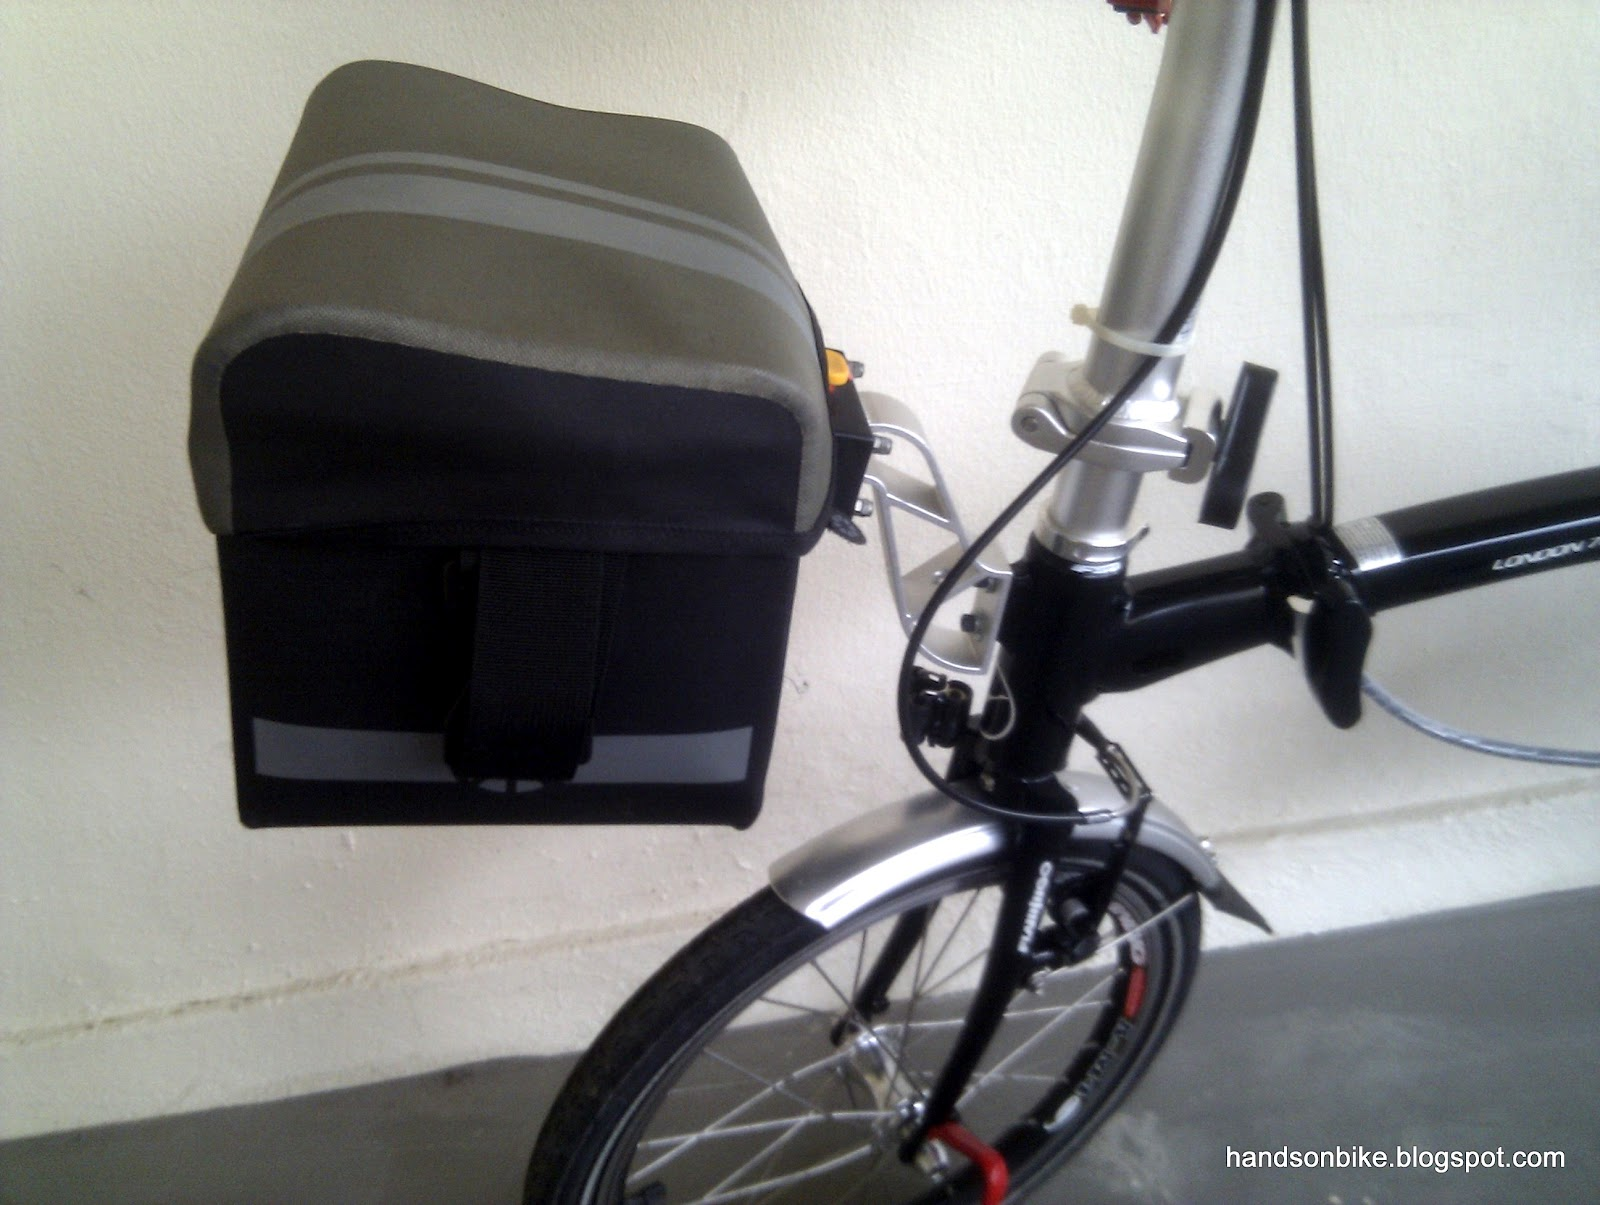 The Dahon Tour Bag Fits Nicely Onto Bike Does Not Affect Steering